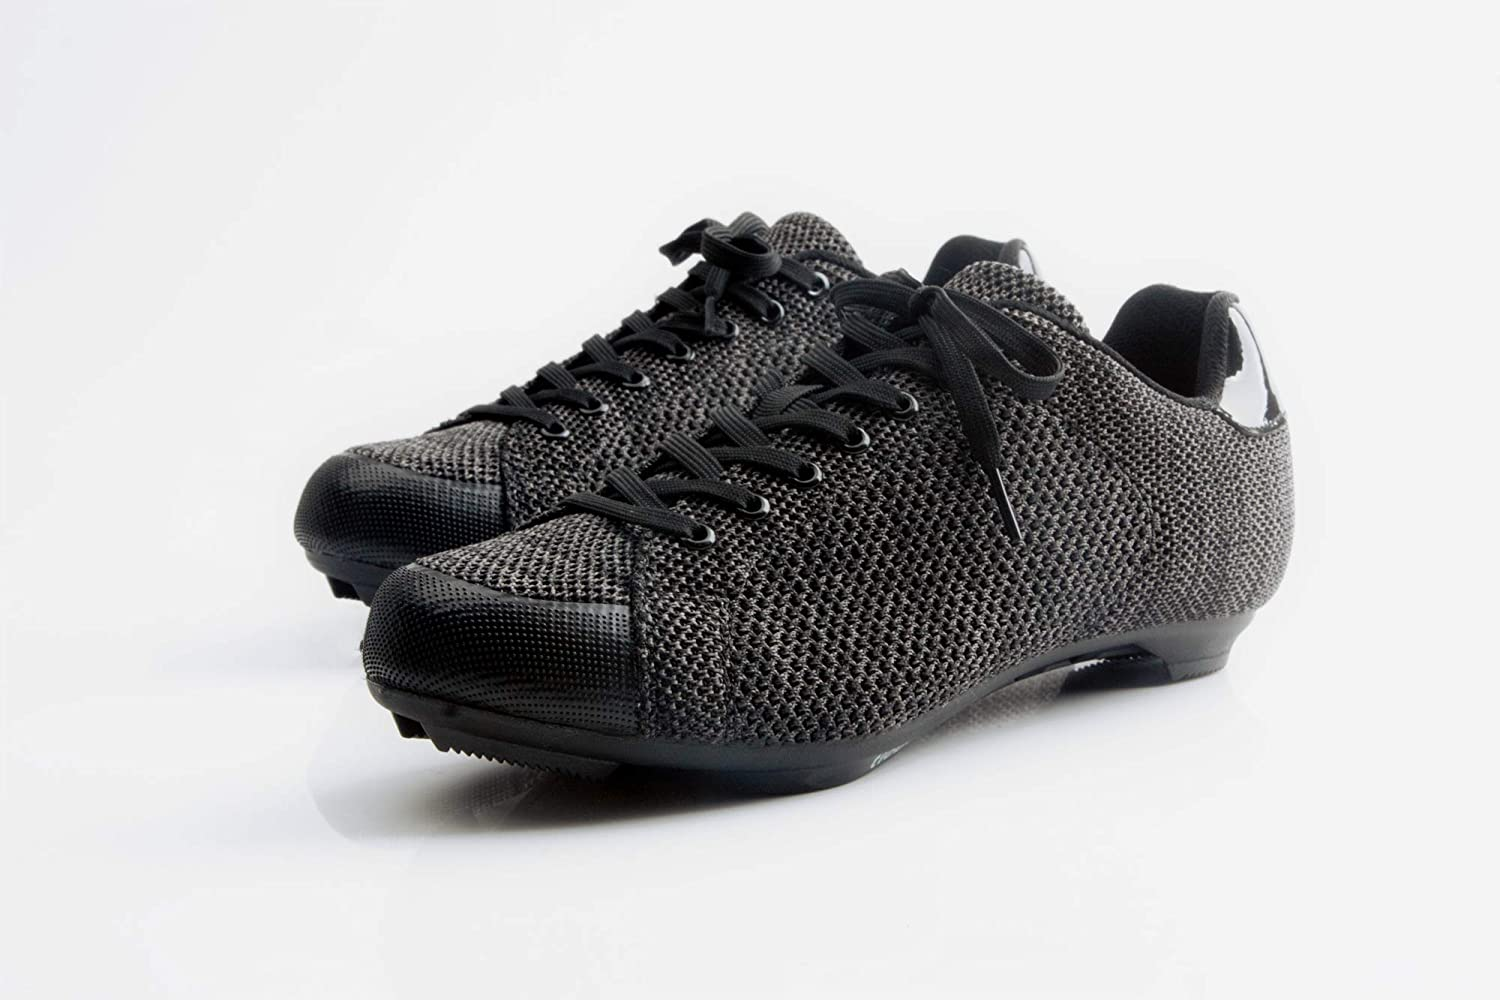 Tiebao Fly-Knit Sneaker Style Professional Road Bicycle Bike Cycling Ultralight Mesh Breathable Shoes SPD SL Look Spin Non-Slip Riding Shoes Lace-up